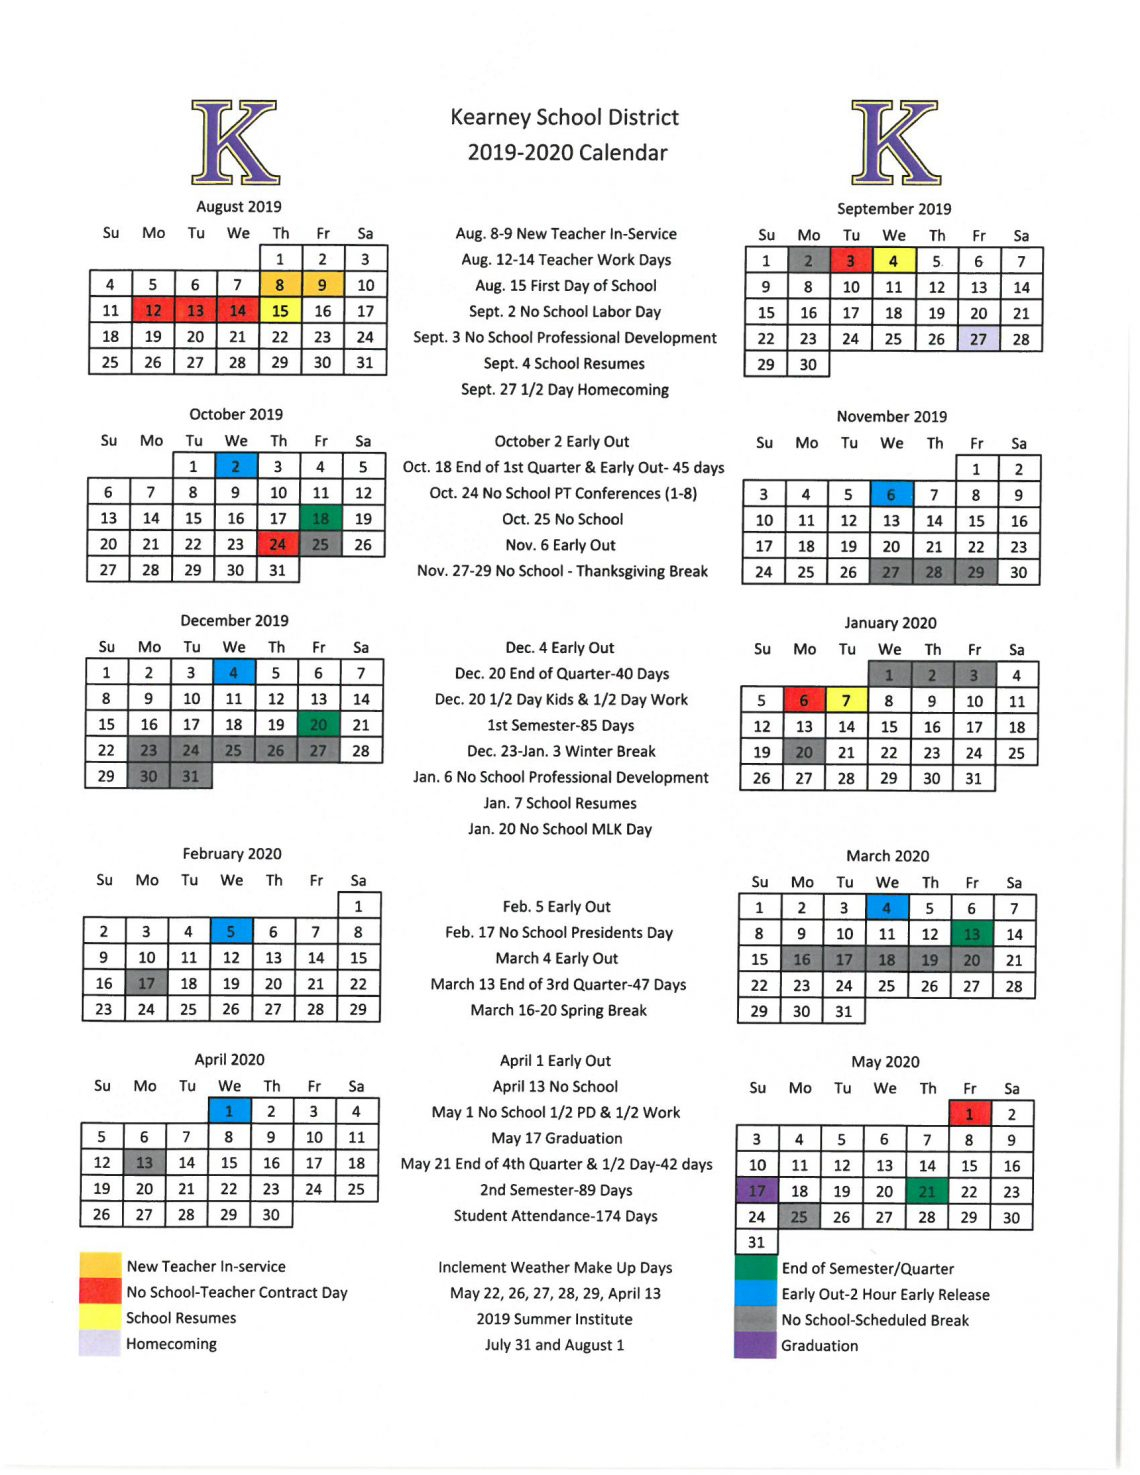 Board Approves 2019-2020 Academic Calendar - Kearney School intended for Calander 2020 We Does The School Close